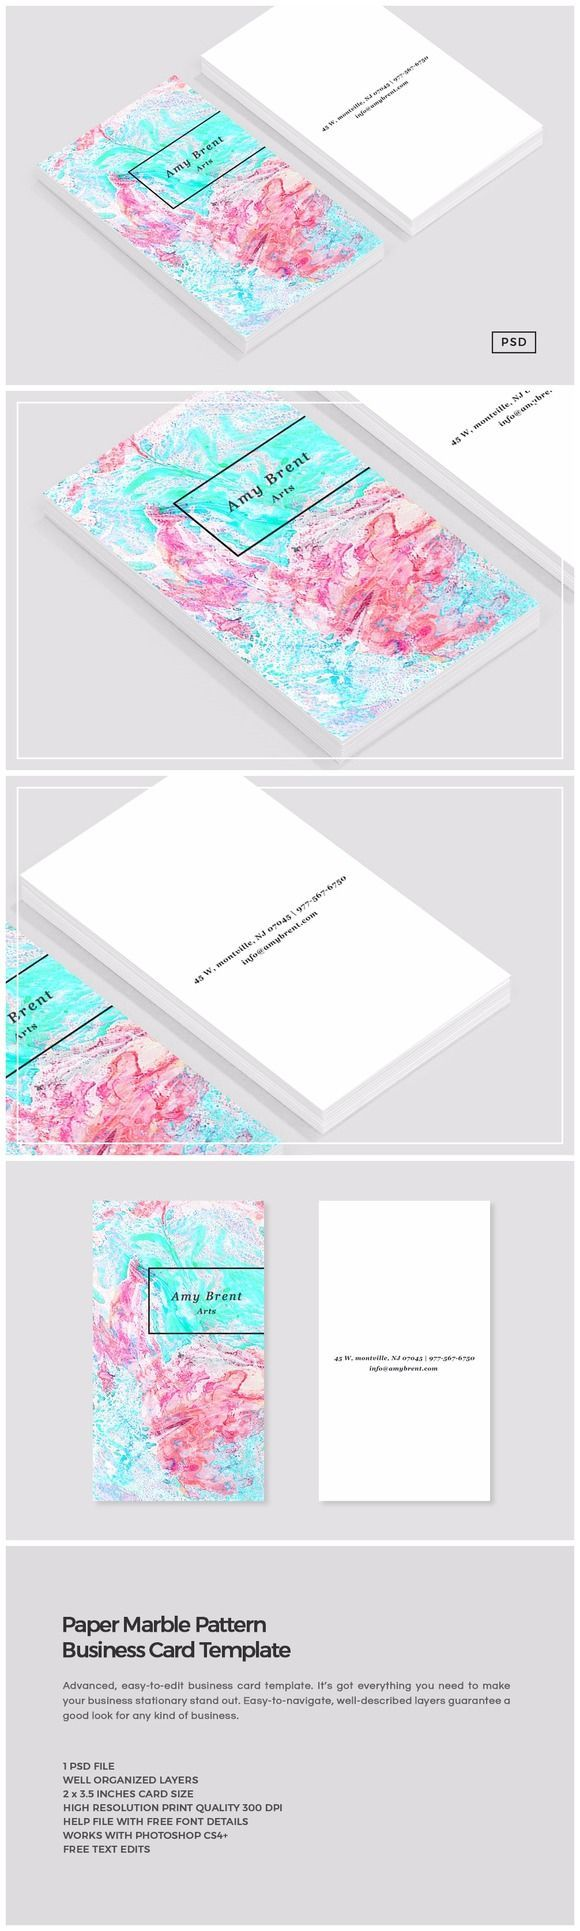 Paper Marble Pattern Business Card Template • Available here → https://creativemarket.com/MeeraG/649973-Paper-Marble-Pattern-Business-Card?u=pxcr